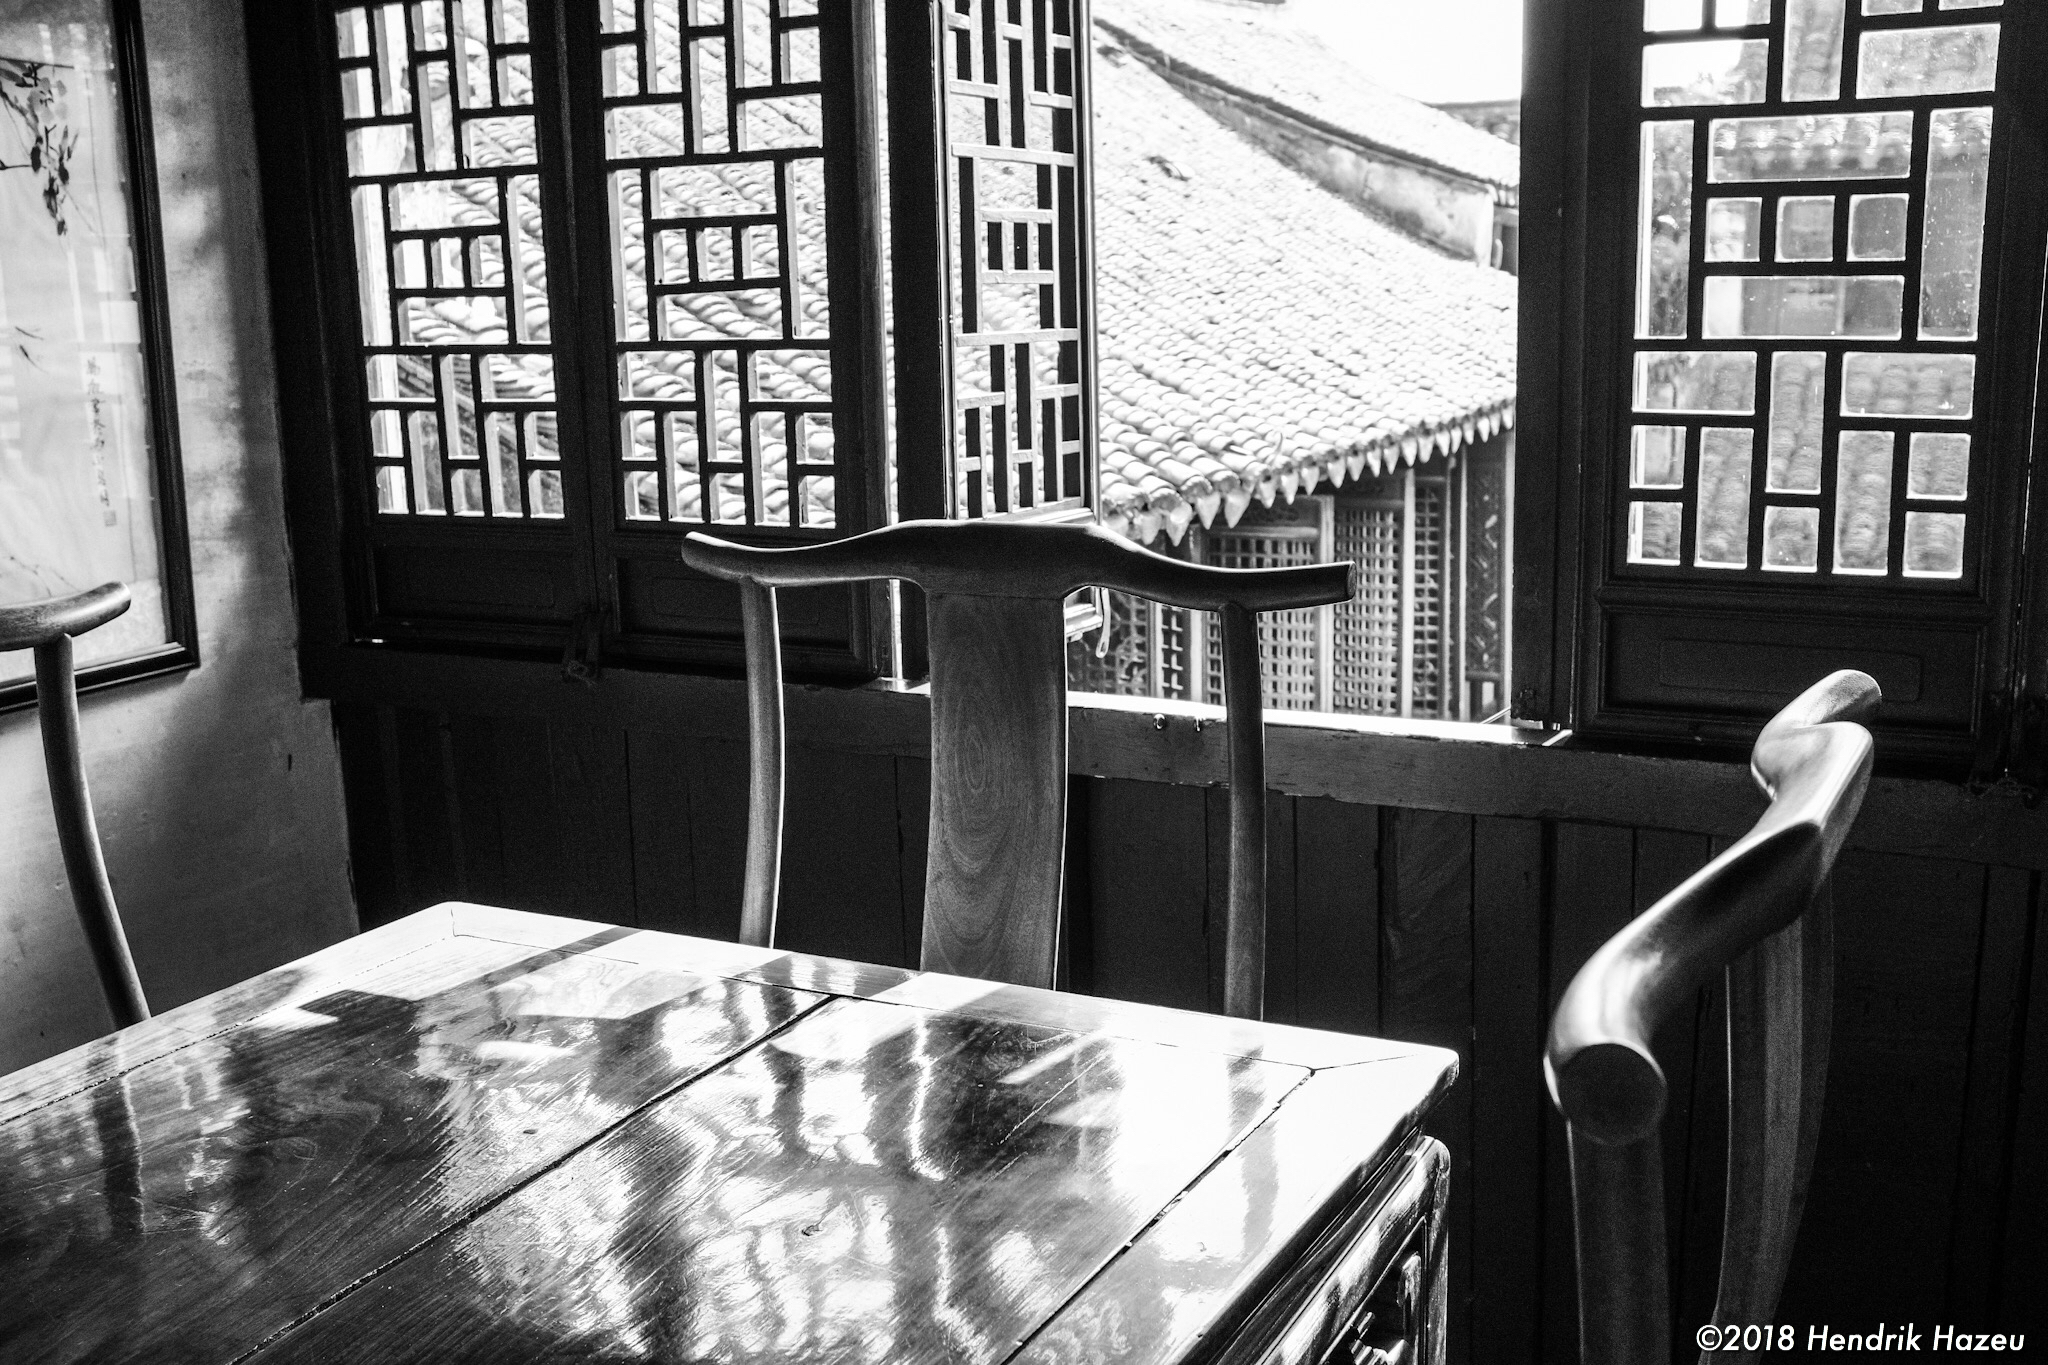 Table by the window,Fuji X100F, 23mm f/2 @f/5.6, 1/75sec ISO400 developed in LR CC mobile